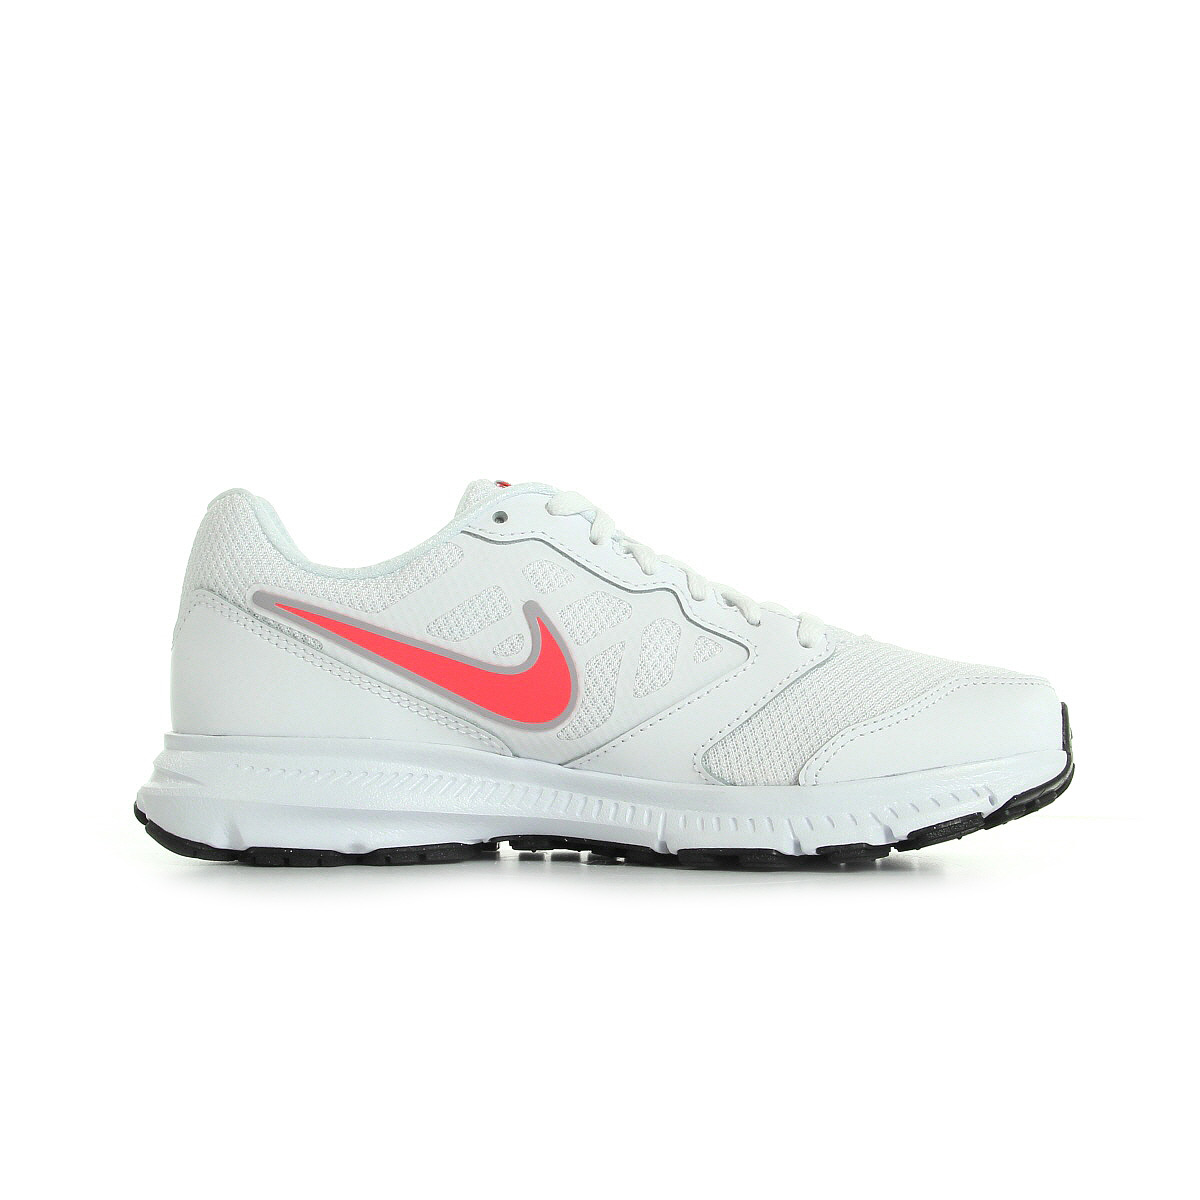 Femme Nike 684765100 Running Downshifter Msl 6 qwBaPX